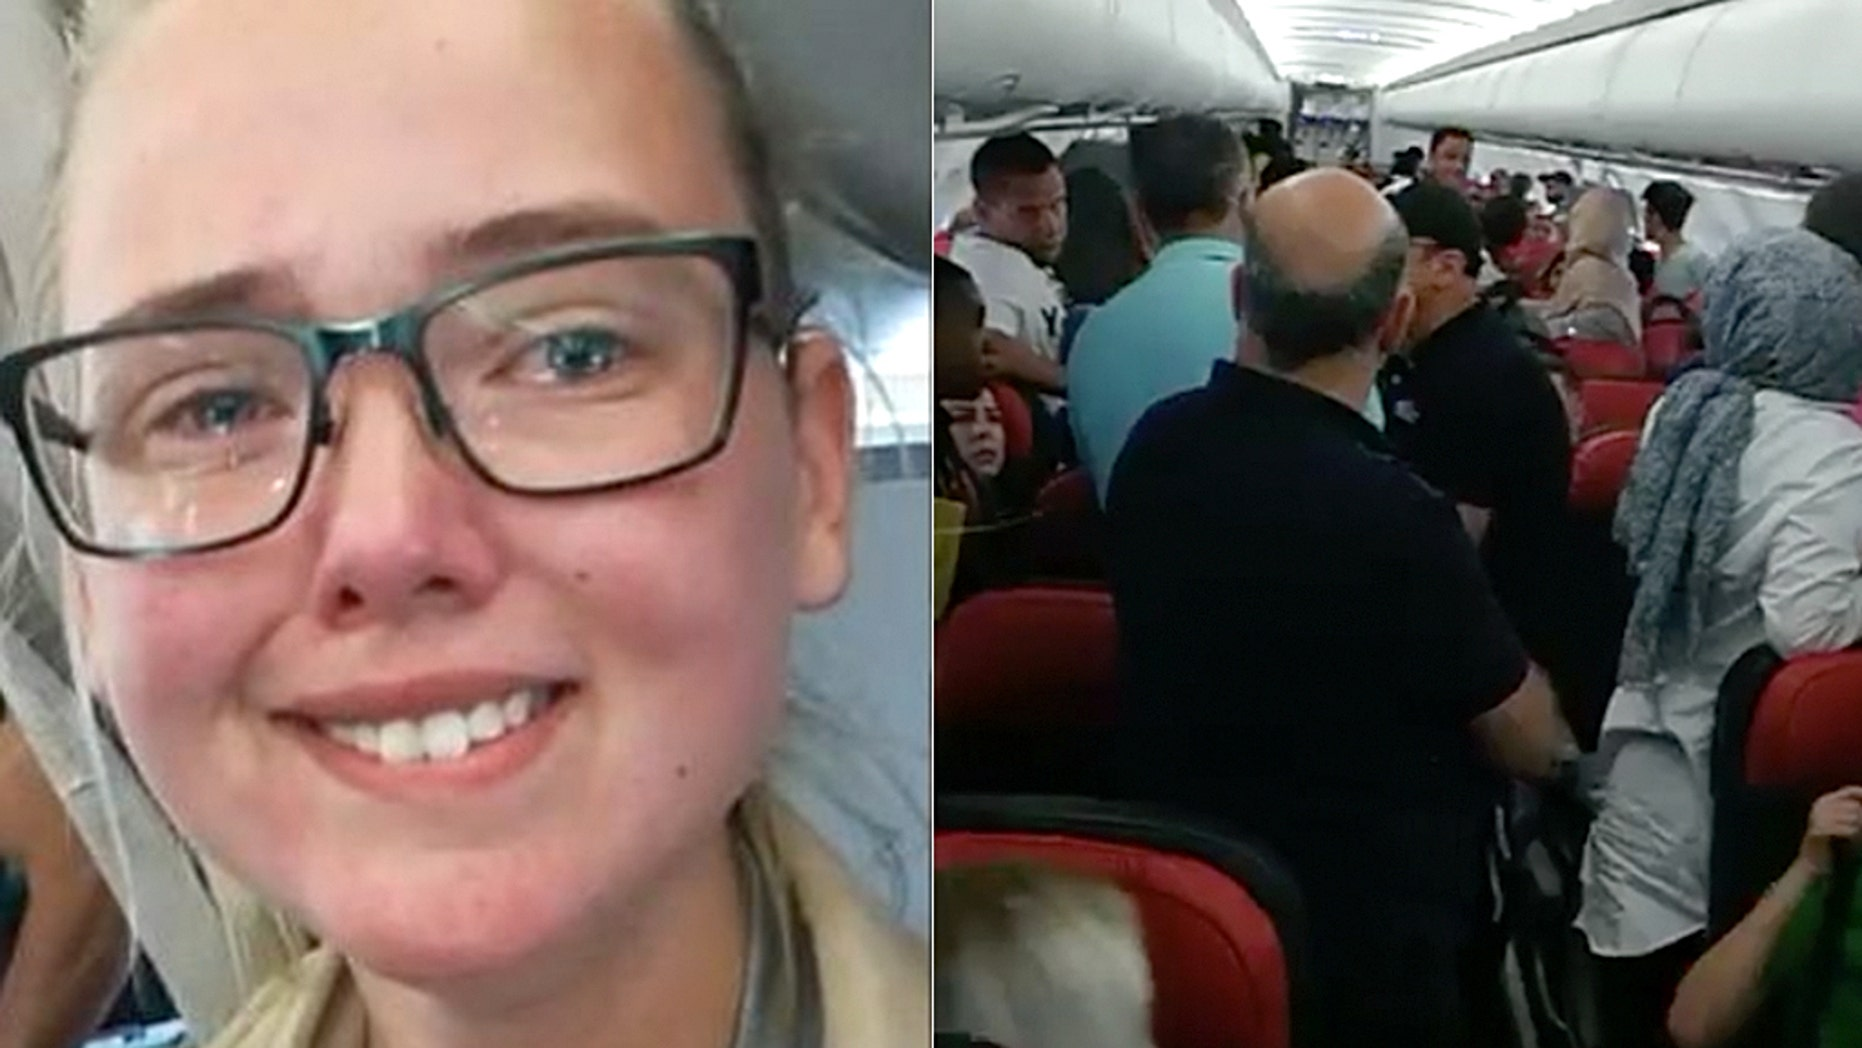 Elin Ersson, a student at Gothenburg University, was subjected to fawning media coverage over her stunt earlier this month when she refused to take her seat on the plane until the 52-year-old Afghan deportee was released. She was successful and authorities weren't able to deport the man.